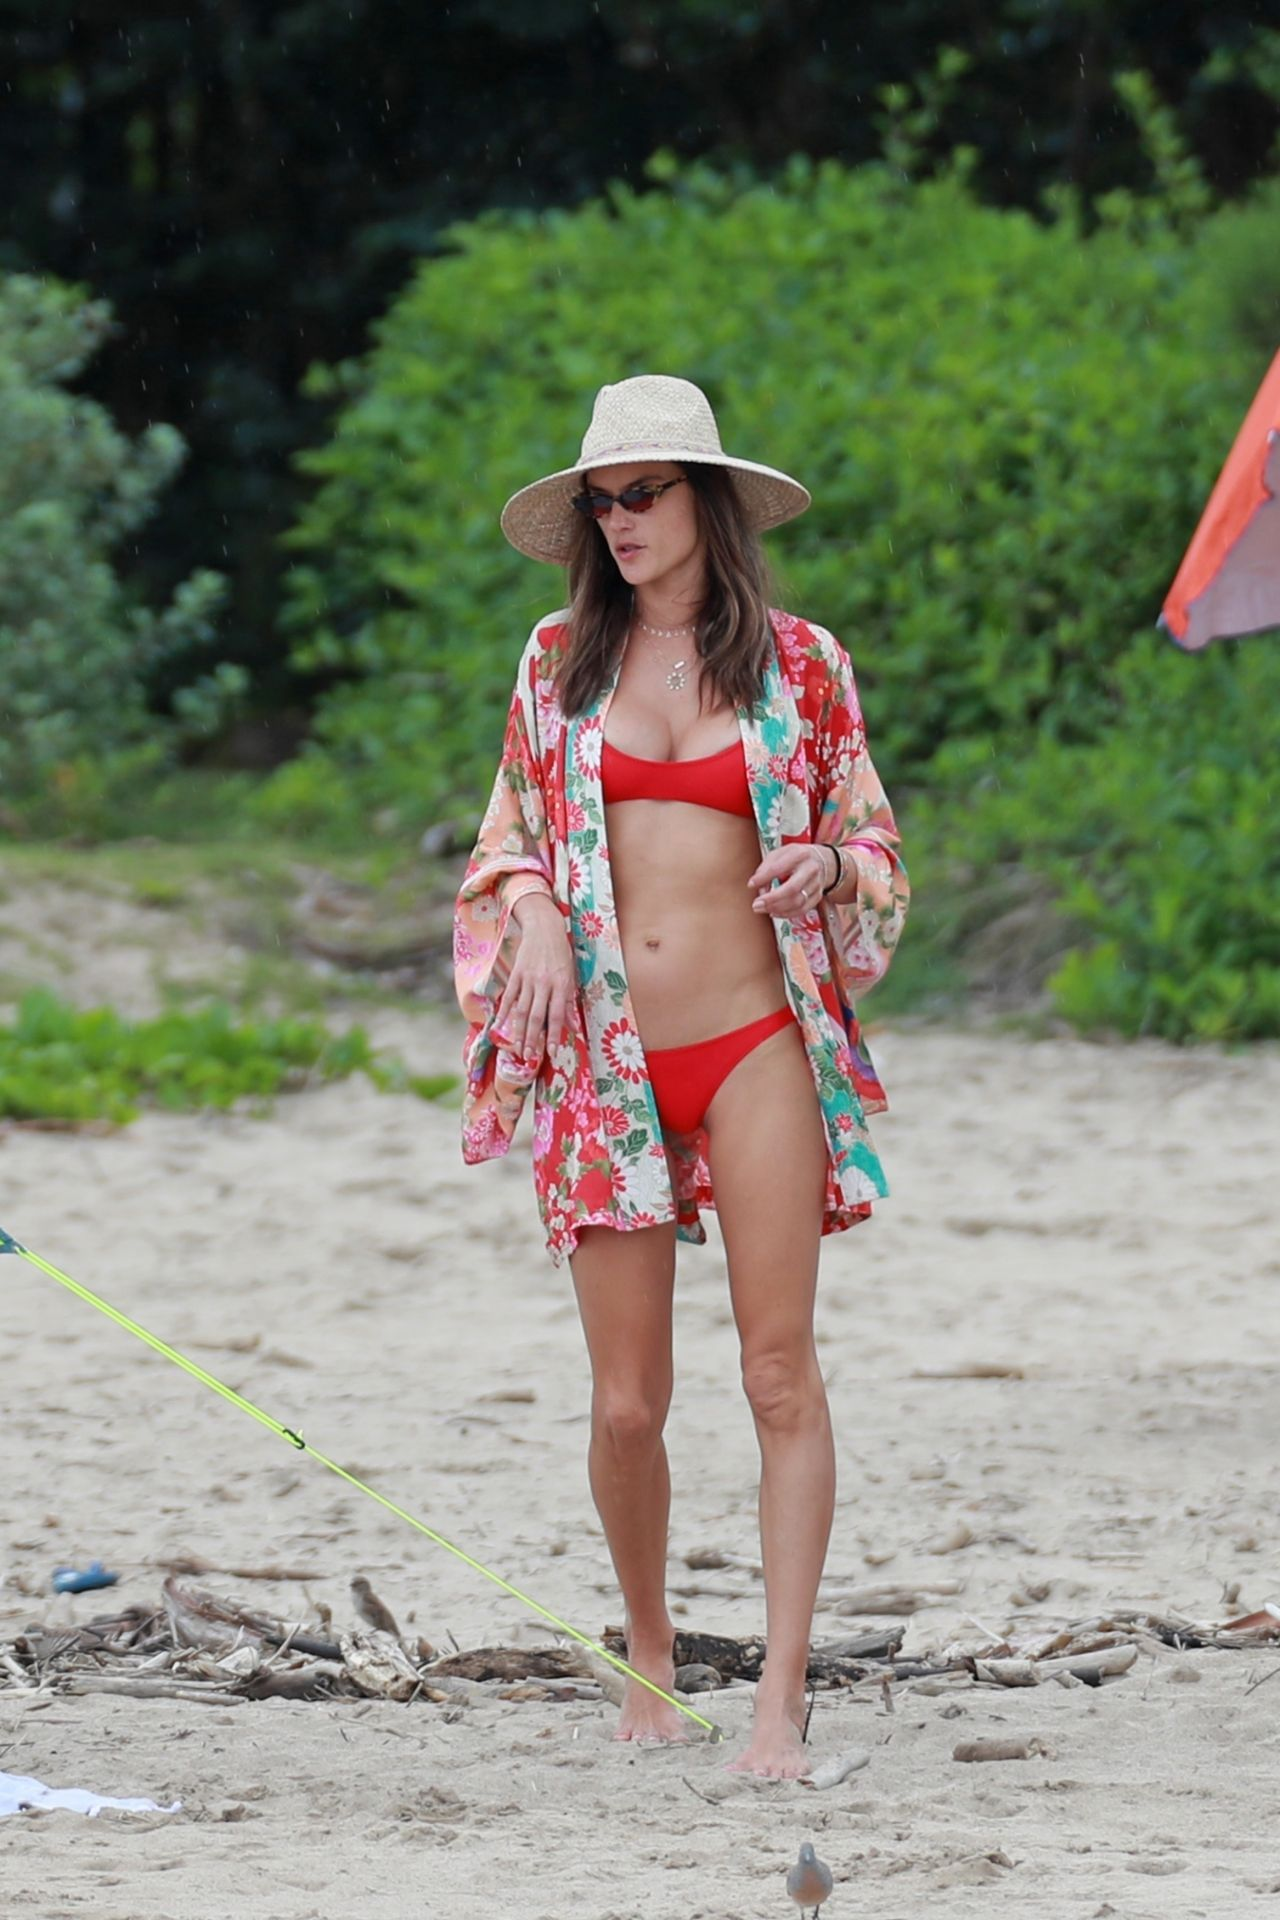 alessandra-ambrosio-in-bikini-at-the-beach-in-hawaii-04-07-2018-12